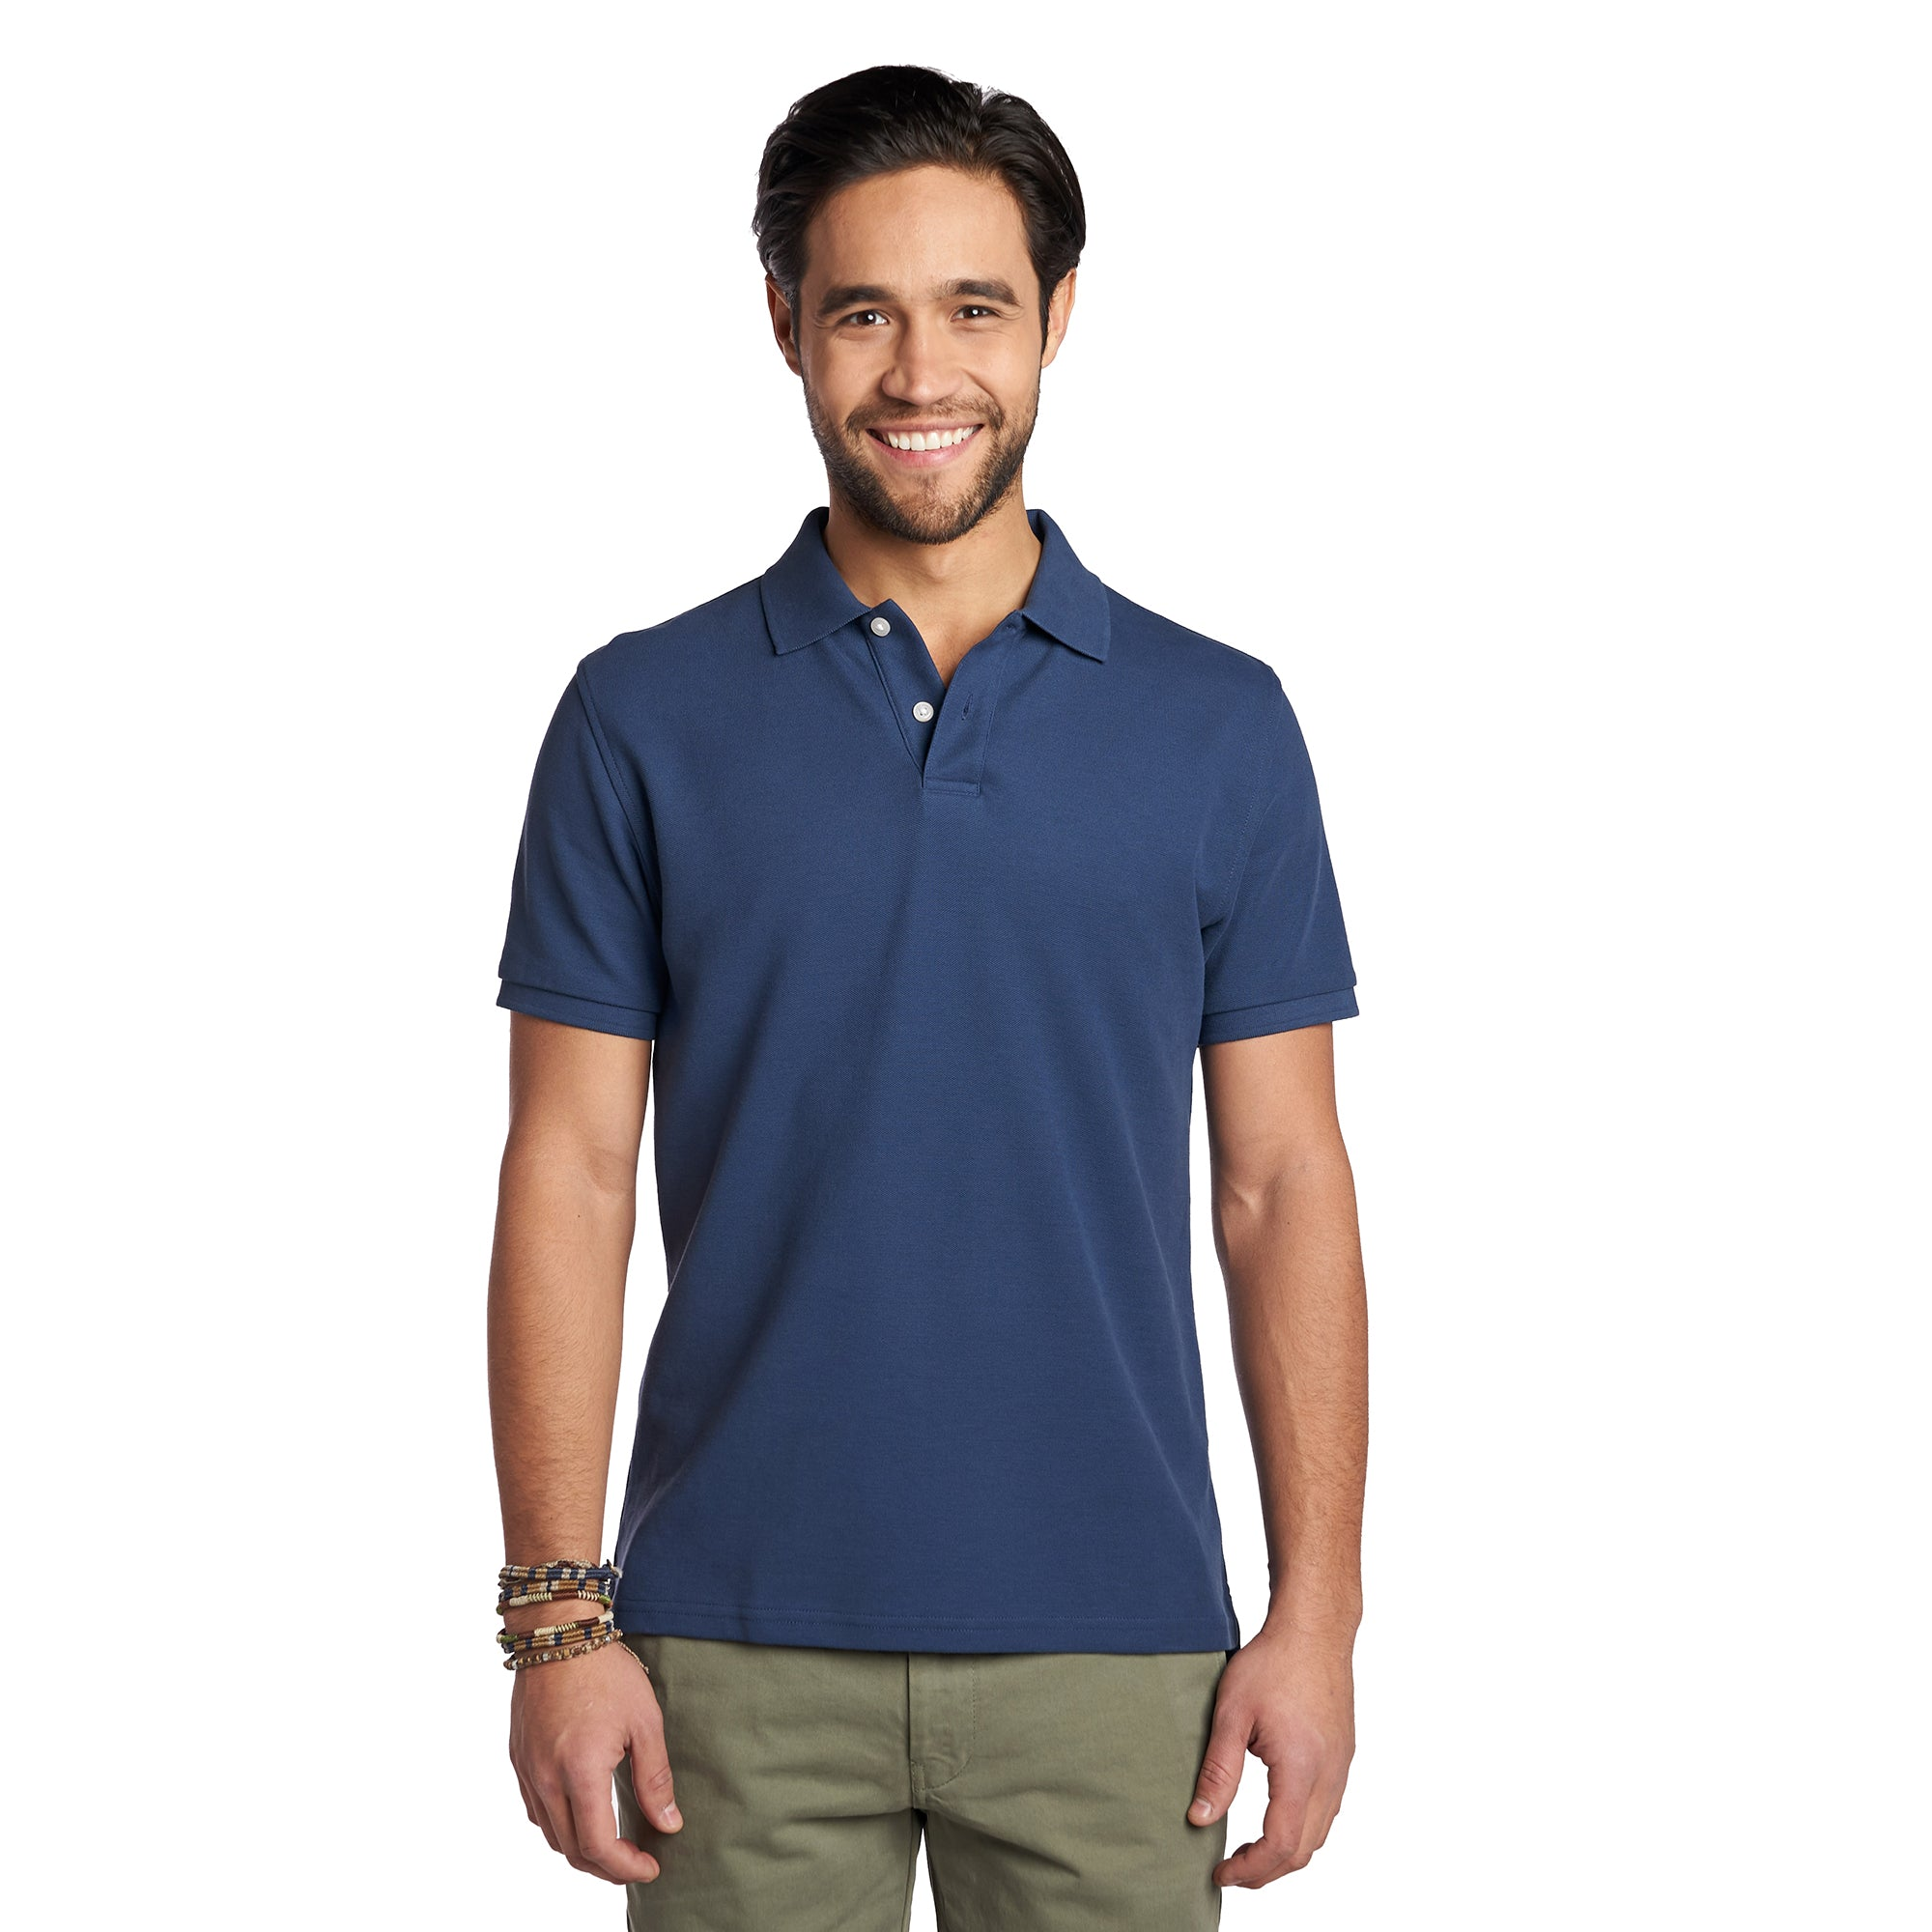 James Polo Shirt - Navy